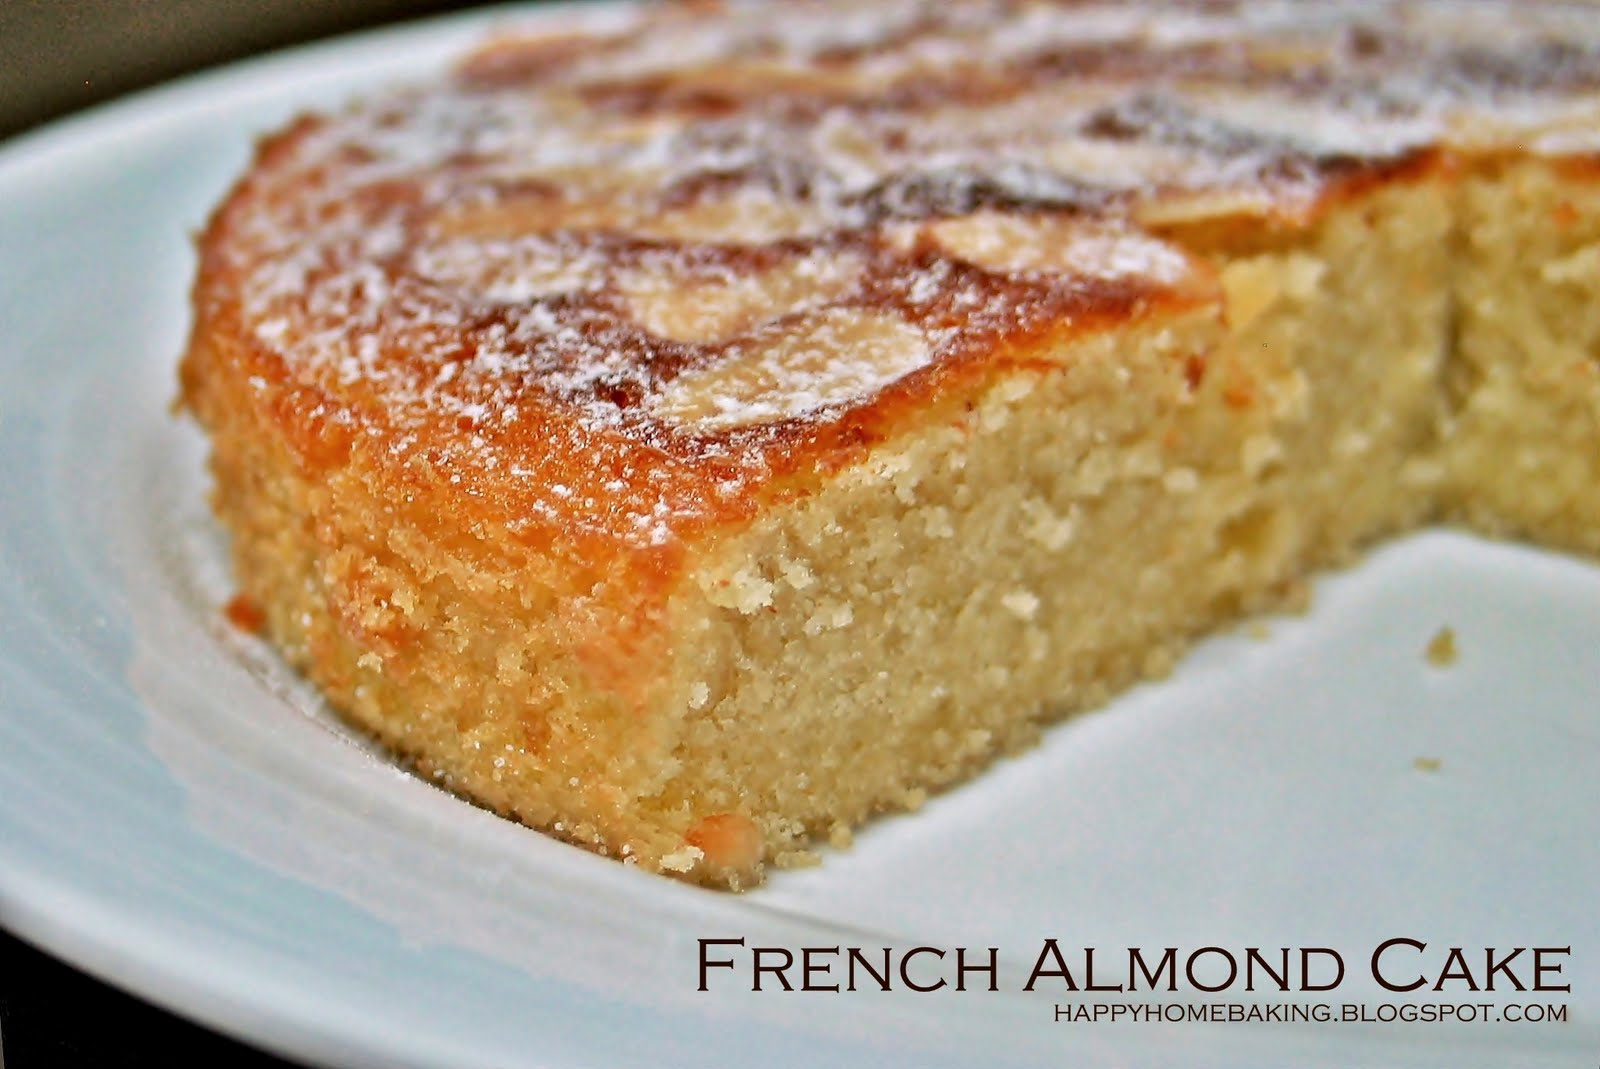 Happy Home Baking French Almond Cake